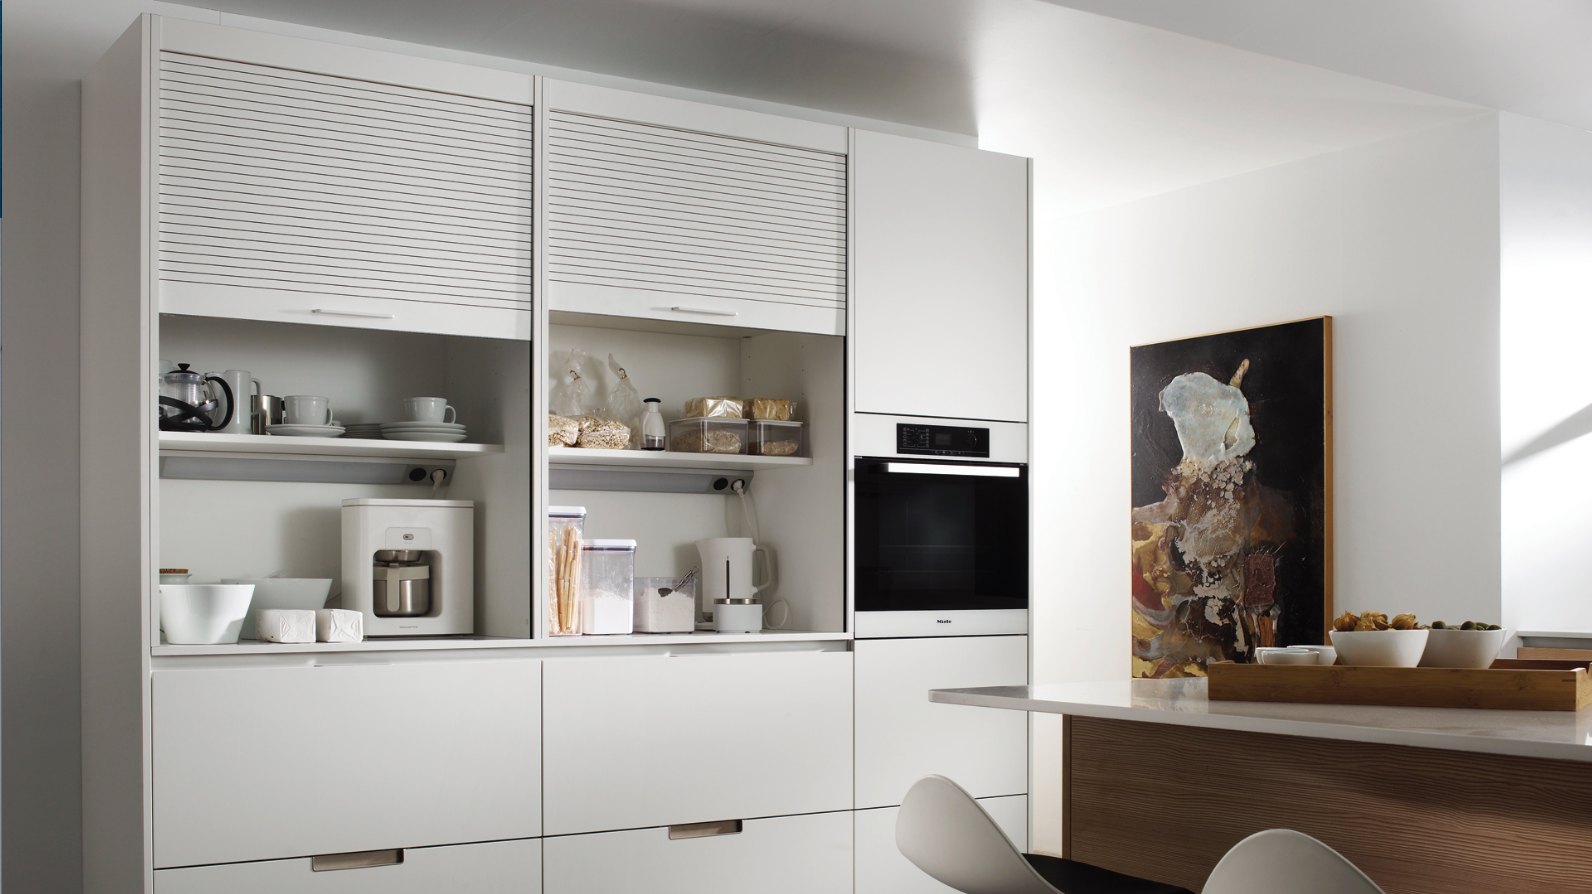 Armario Persiana Cocina El Interior Nos Define P Furniture Kitchens Muebles De